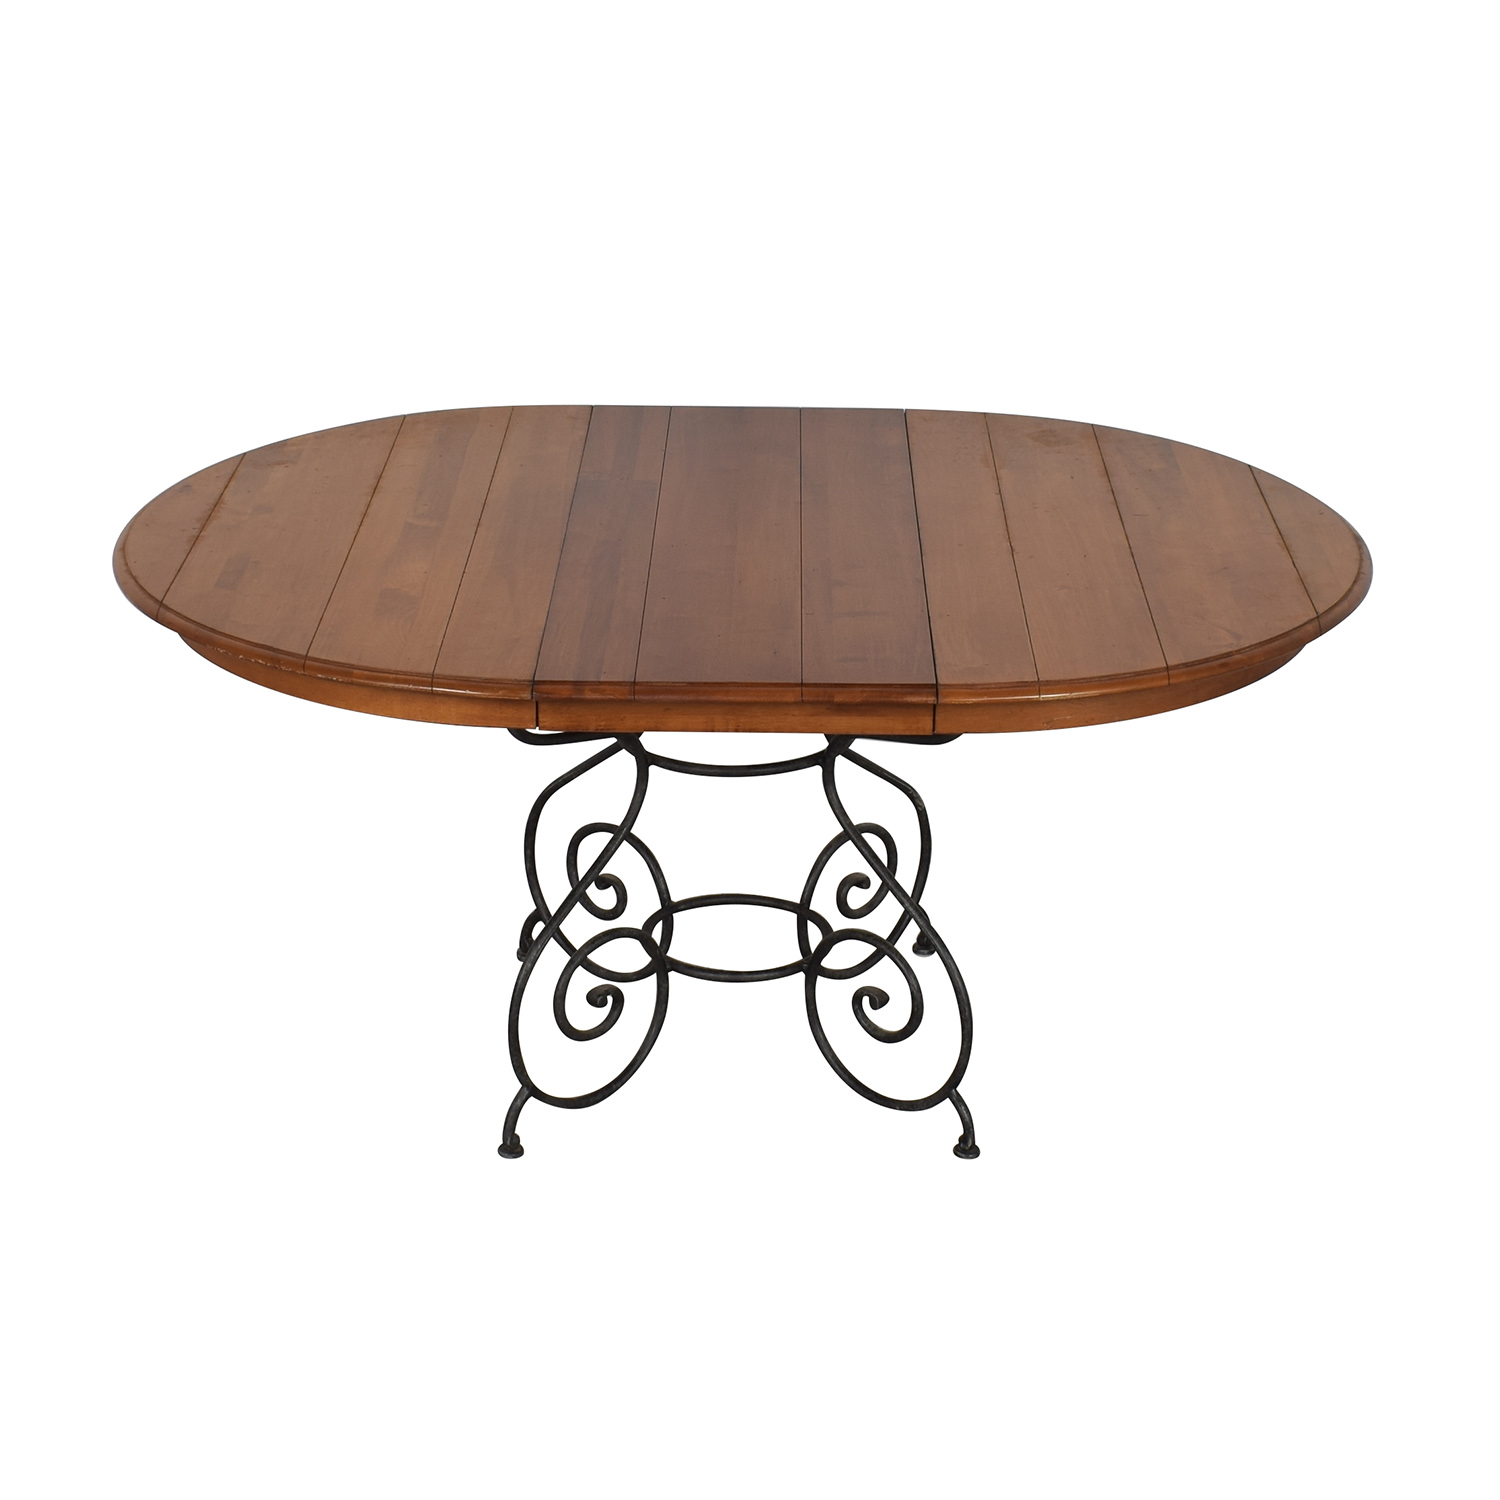 Ethan Allen Ethan Allen Legacy Russet Dining Table used